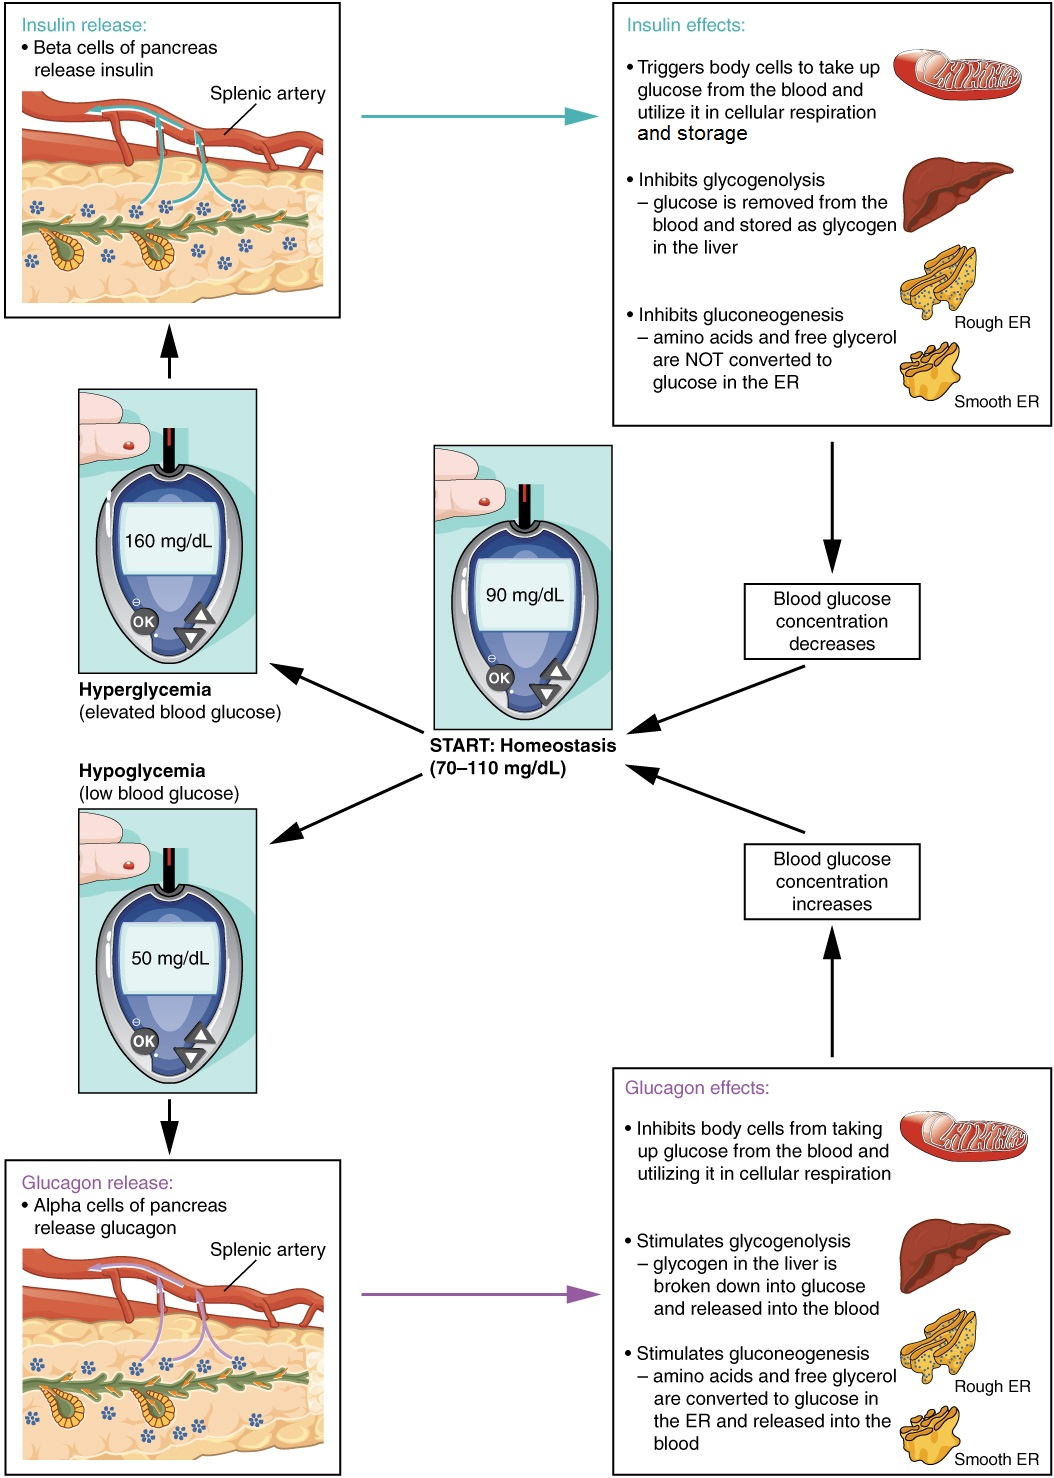 This diagram shows the homeostatic regulation of blood glucose levels. Blood glucose concentration is tightly maintained between 70 milligrams per deciliter and 110 milligrams per deciliter. If blood glucose concentration rises above this range (hyperglycemia), insulin is released from the pancreas. Insulin triggers body cells to take up glucose from the blood and utilize it in cellular respiration. Insulin also inhibits glycogenolysis, in that glucose is removed from the blood and stored as glycogen in the liver. Insulin also inhibits gluconeogenesis, in that amino acids and free glycerol are not converted to glucose in the ER. If blood glucose concentration drops below this range, glucagon is released, which stimulates body cells to release glucose into the blood. All of these actions cause blood glucose concentration to decrease. When blood glucose concentration is low (hypoglycemia), alpha cells of the pancreas release glucagon. Glucagon inhibits body cells from taking up glucose from the blood and utilizing it in cellular respiration. Glucagon also stimulates glycogenolysis, in that glycogen in the liver is broken down into glucose and released into the blood. Glucagon also stimulates glucogenogenesis, in that amino acids and free glycerol are converted to glucose in the ER and released into the blood. All of these actions cause blood glucose concentrations to increase.